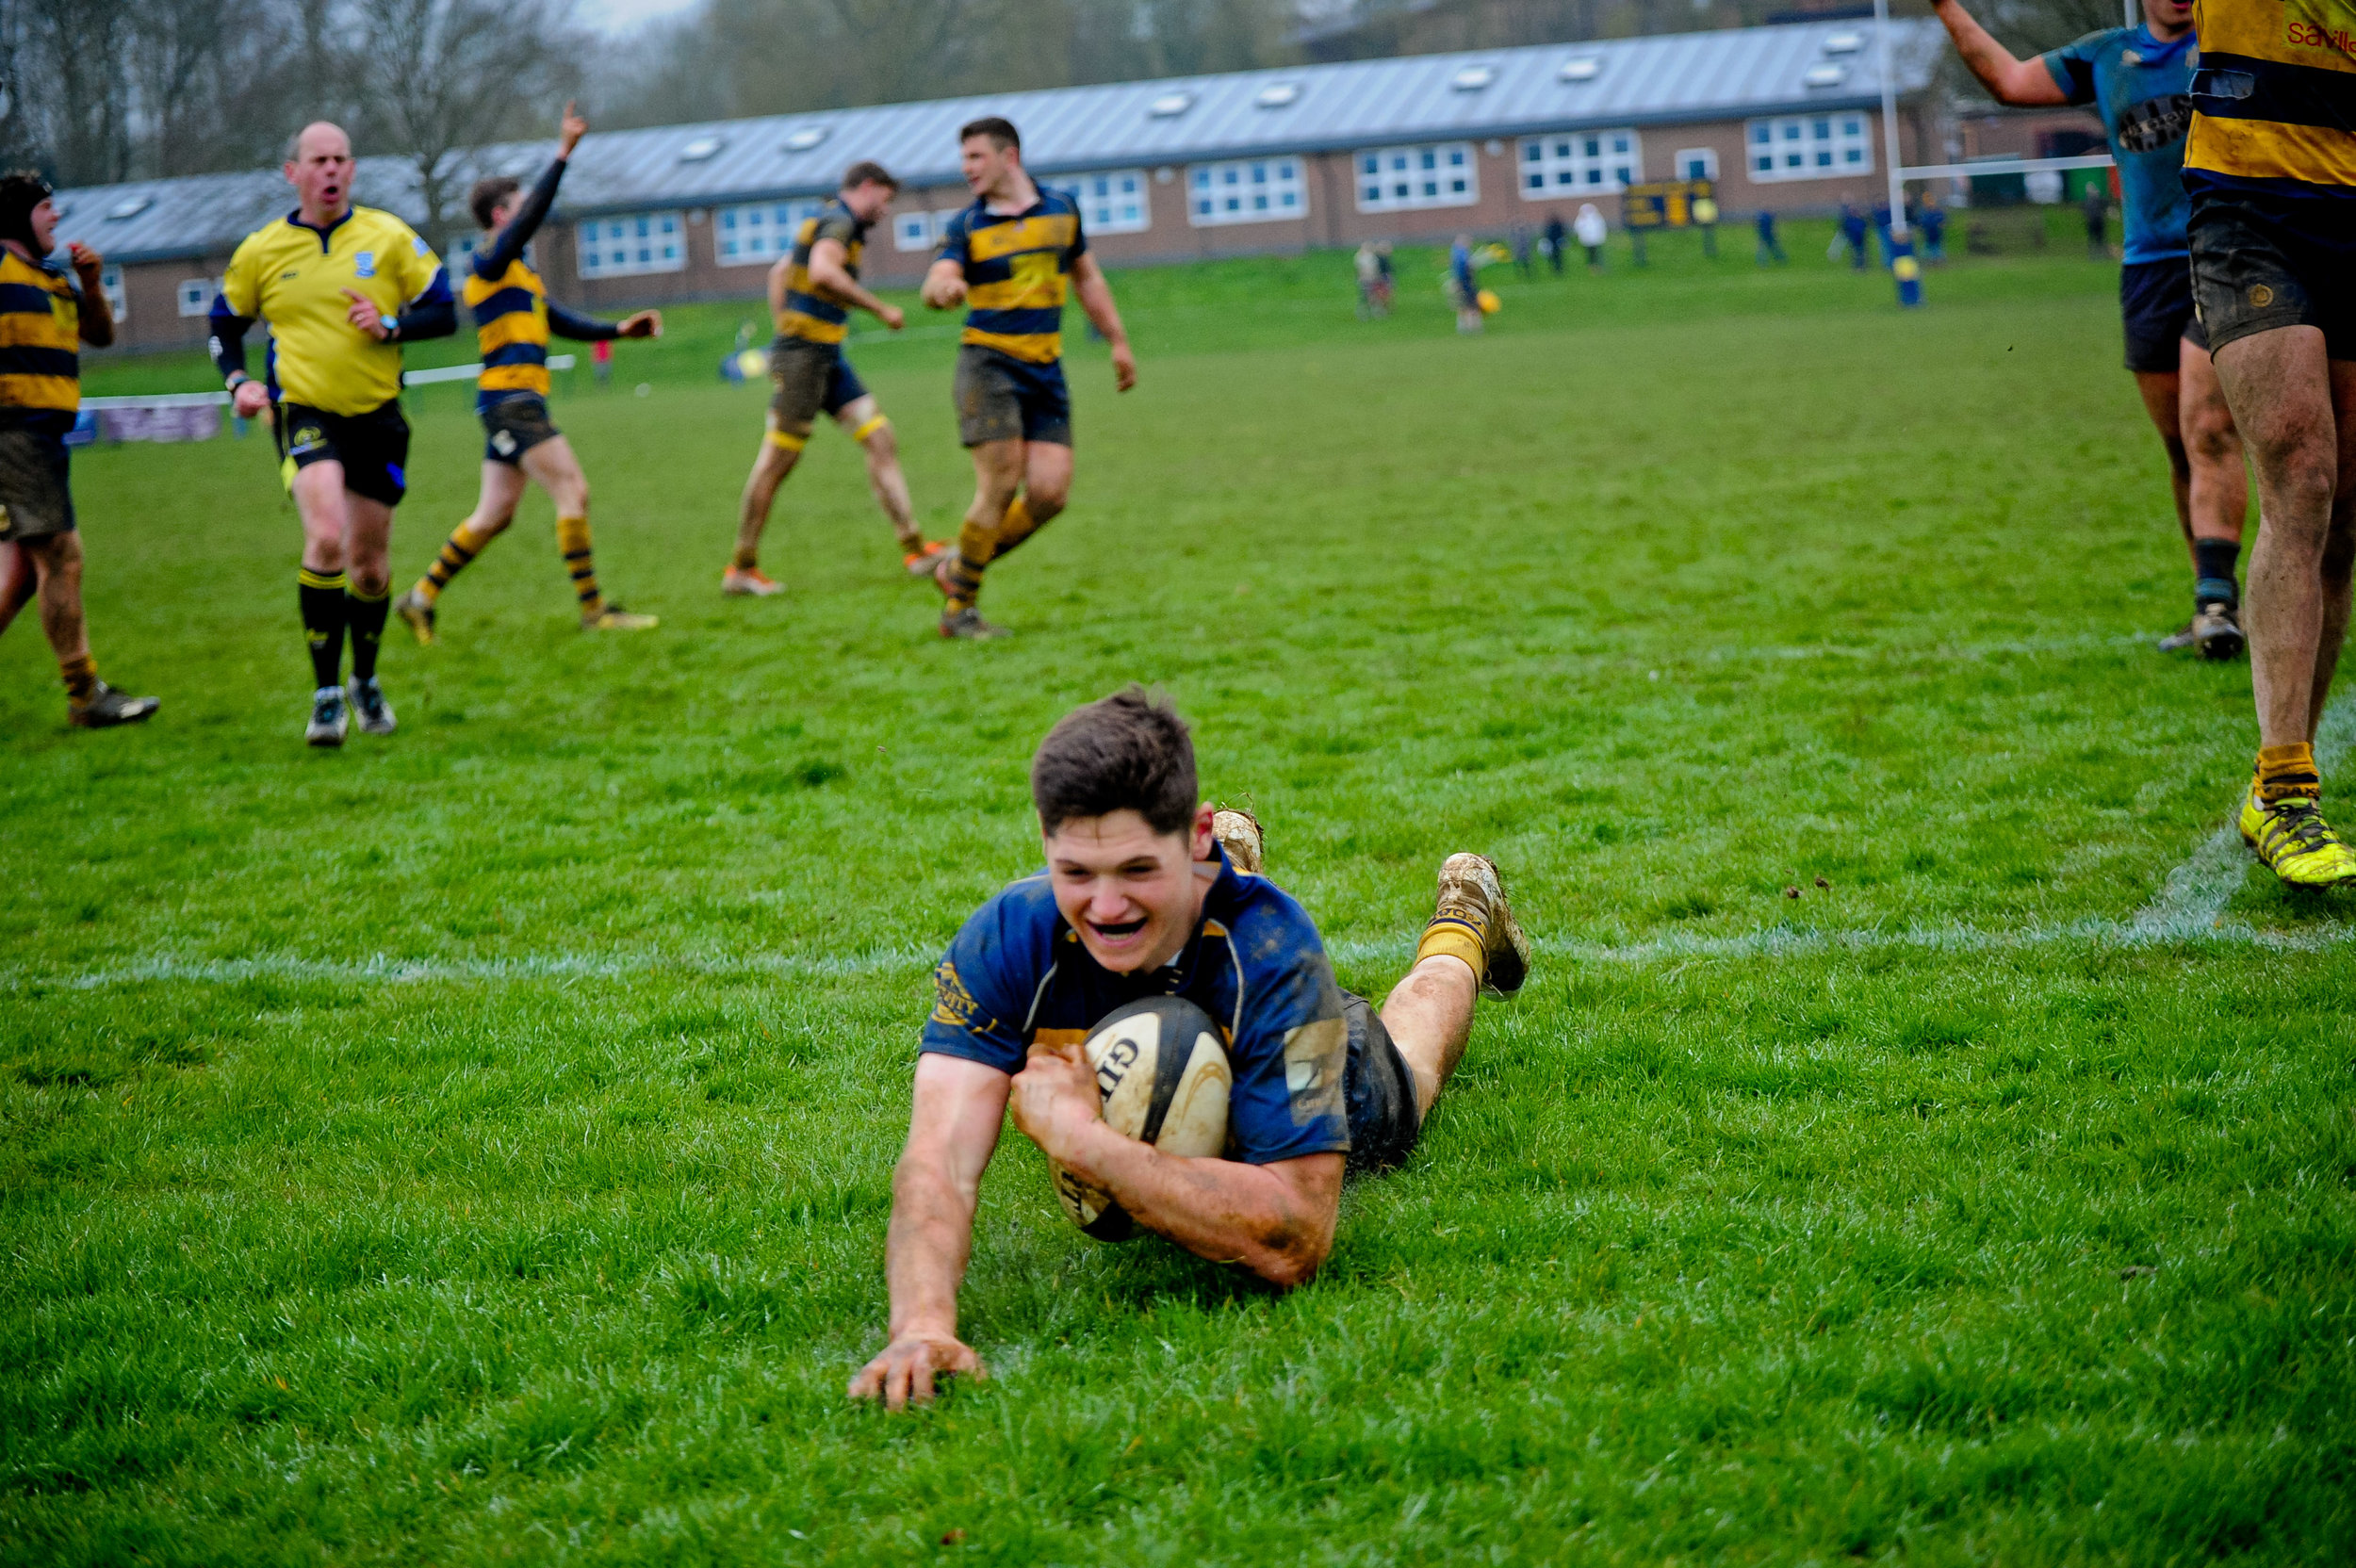 Oaks Leighton Ralph goes over for an Oaks score. Photo Credit: David Purday